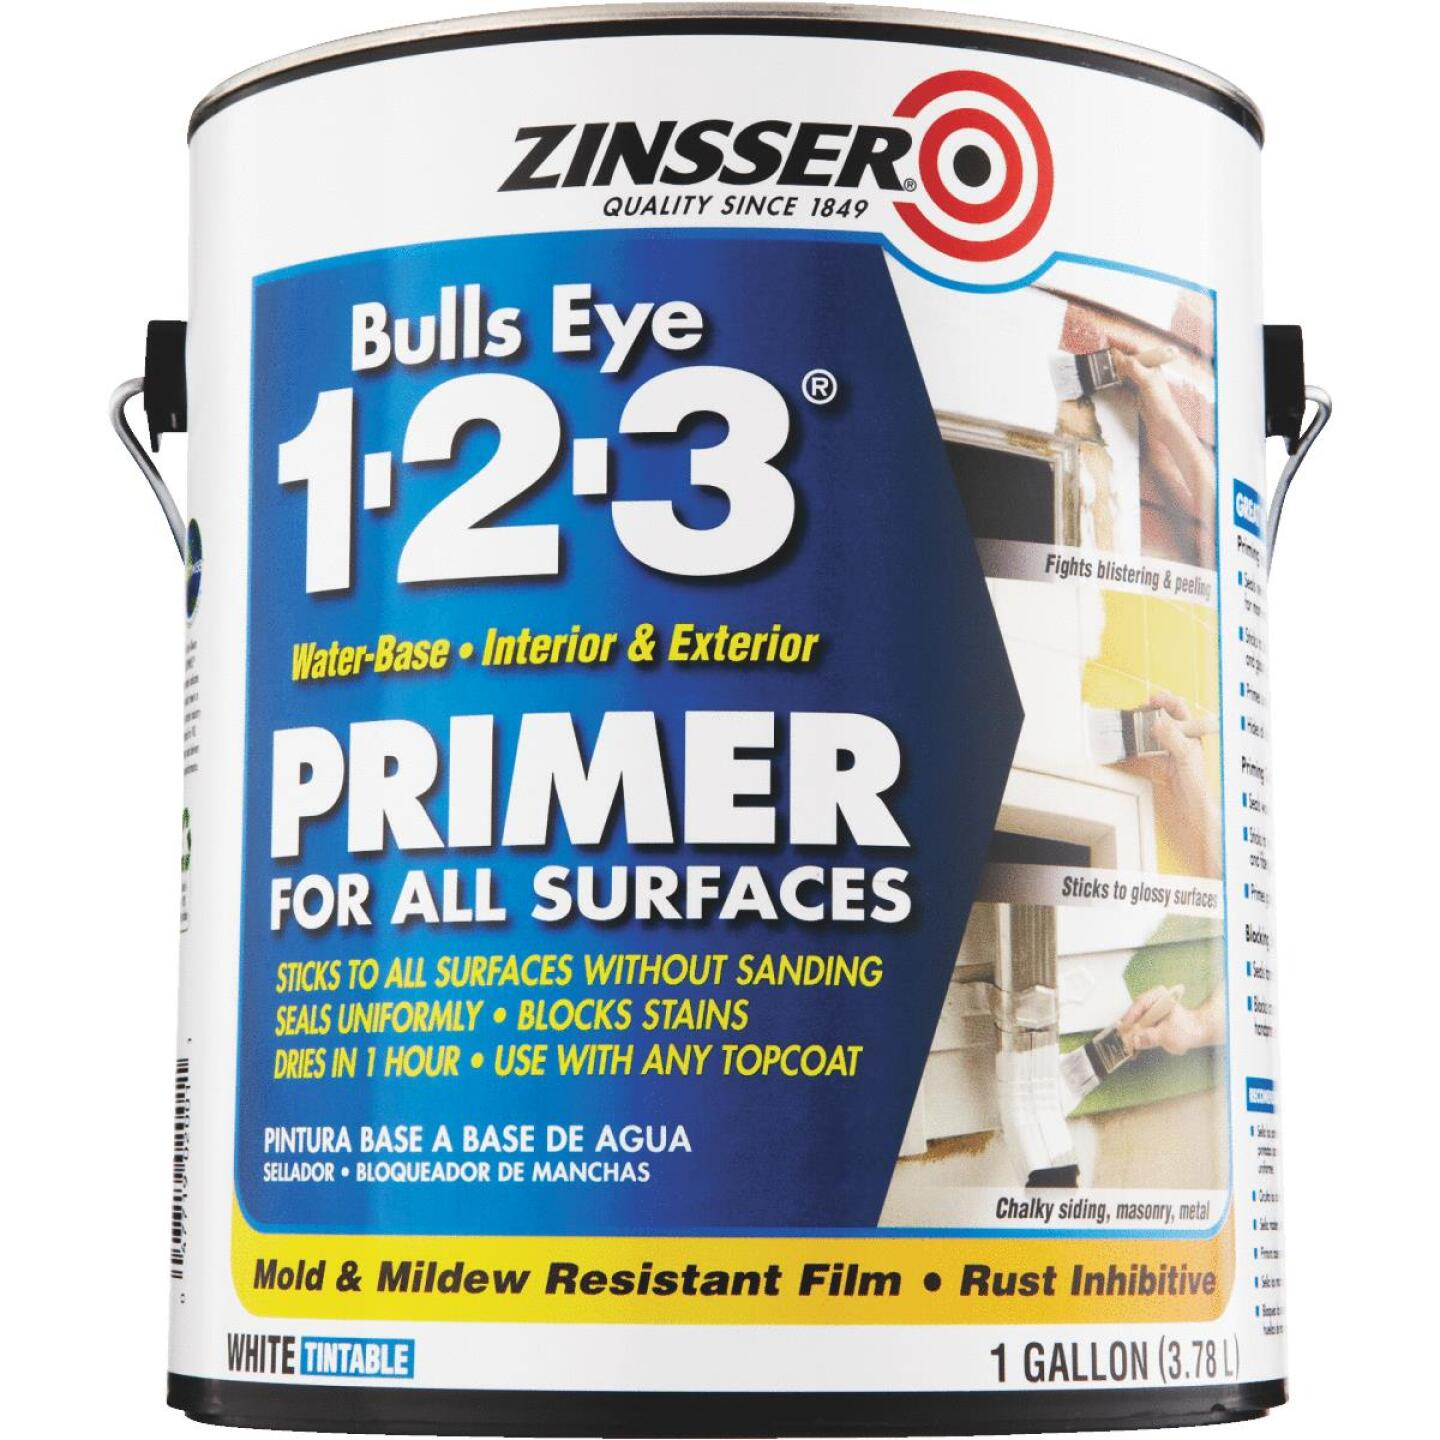 Zinsser Bulls Eye 1-2-3 Water-Base Interior/Exterior Stain Blocking Primer, White, 1 Gal. Image 4